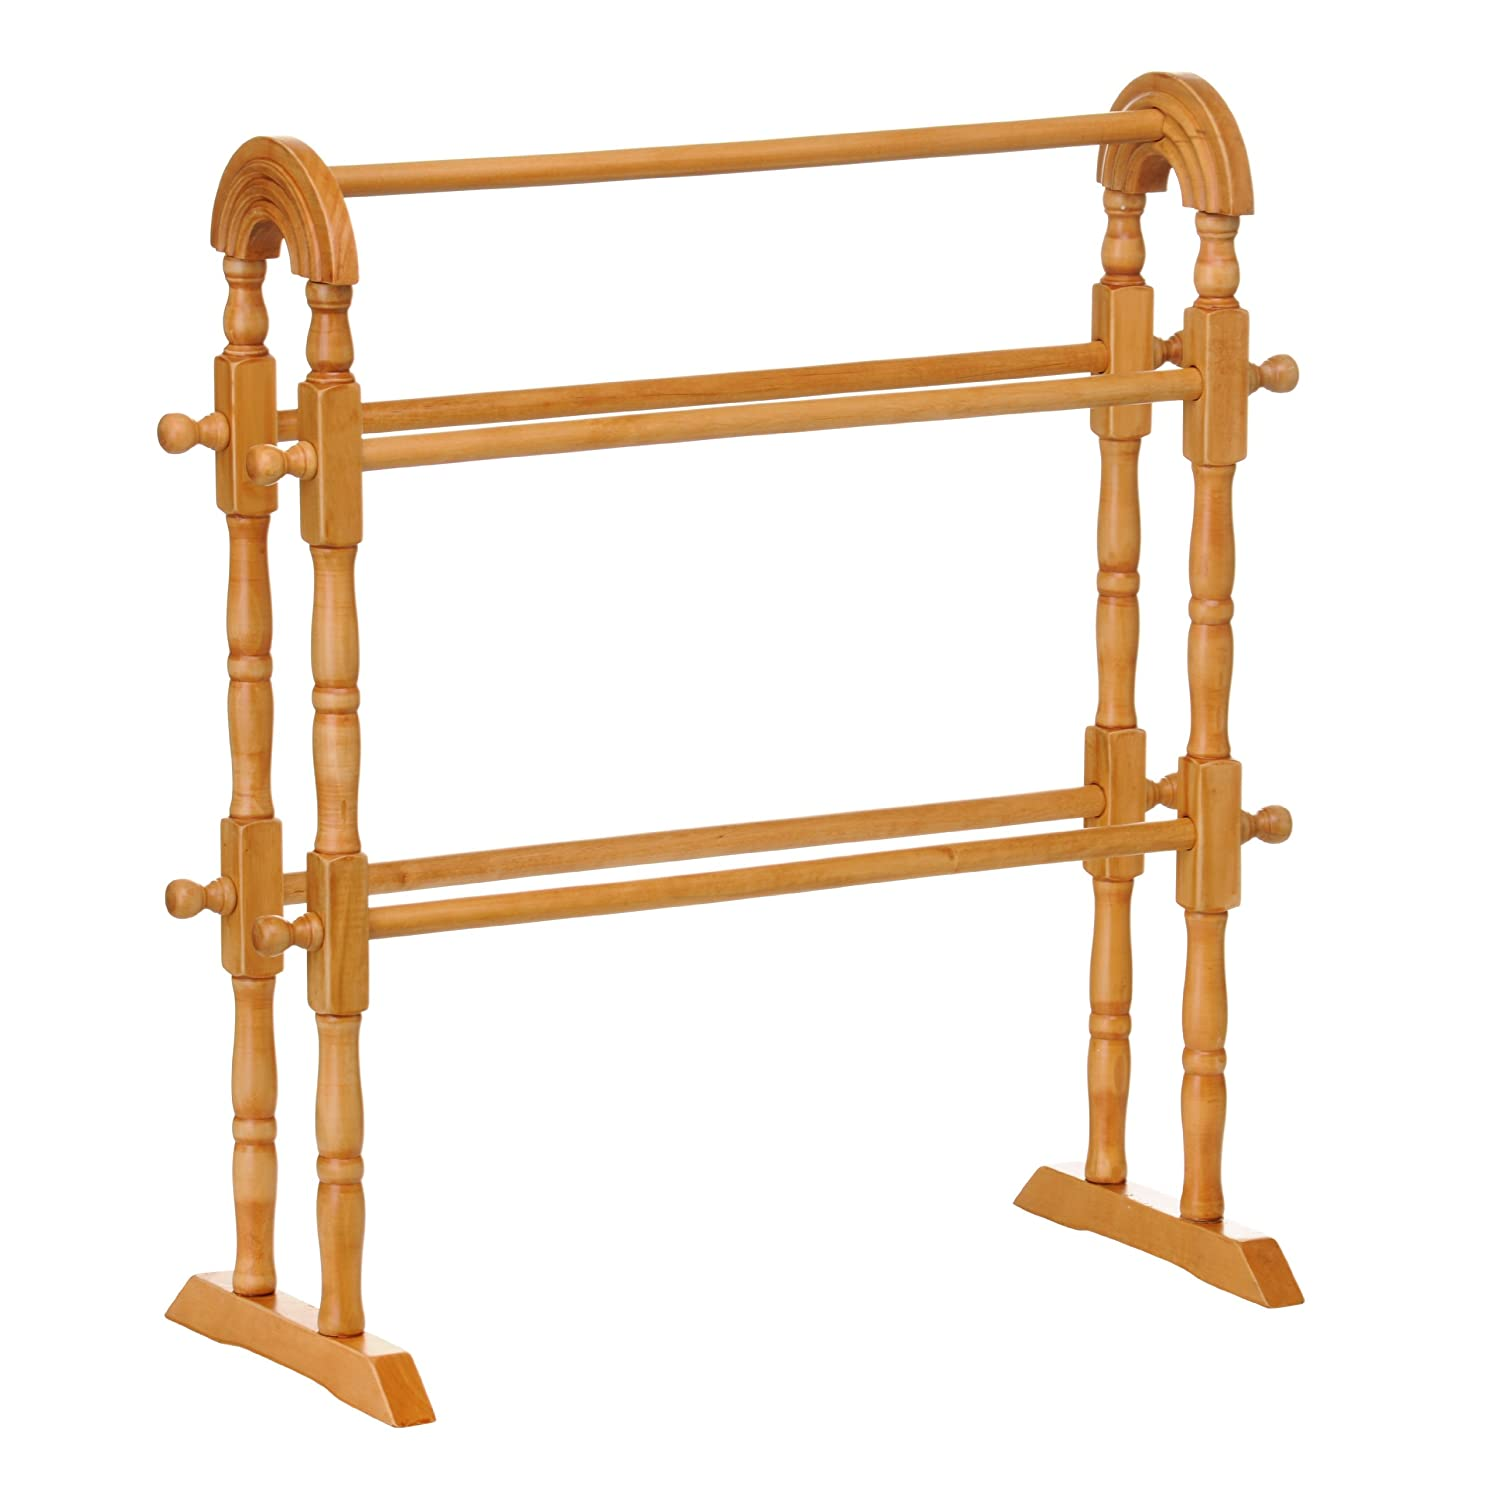 standing grela pin tier rack lb stand holder towel bar double